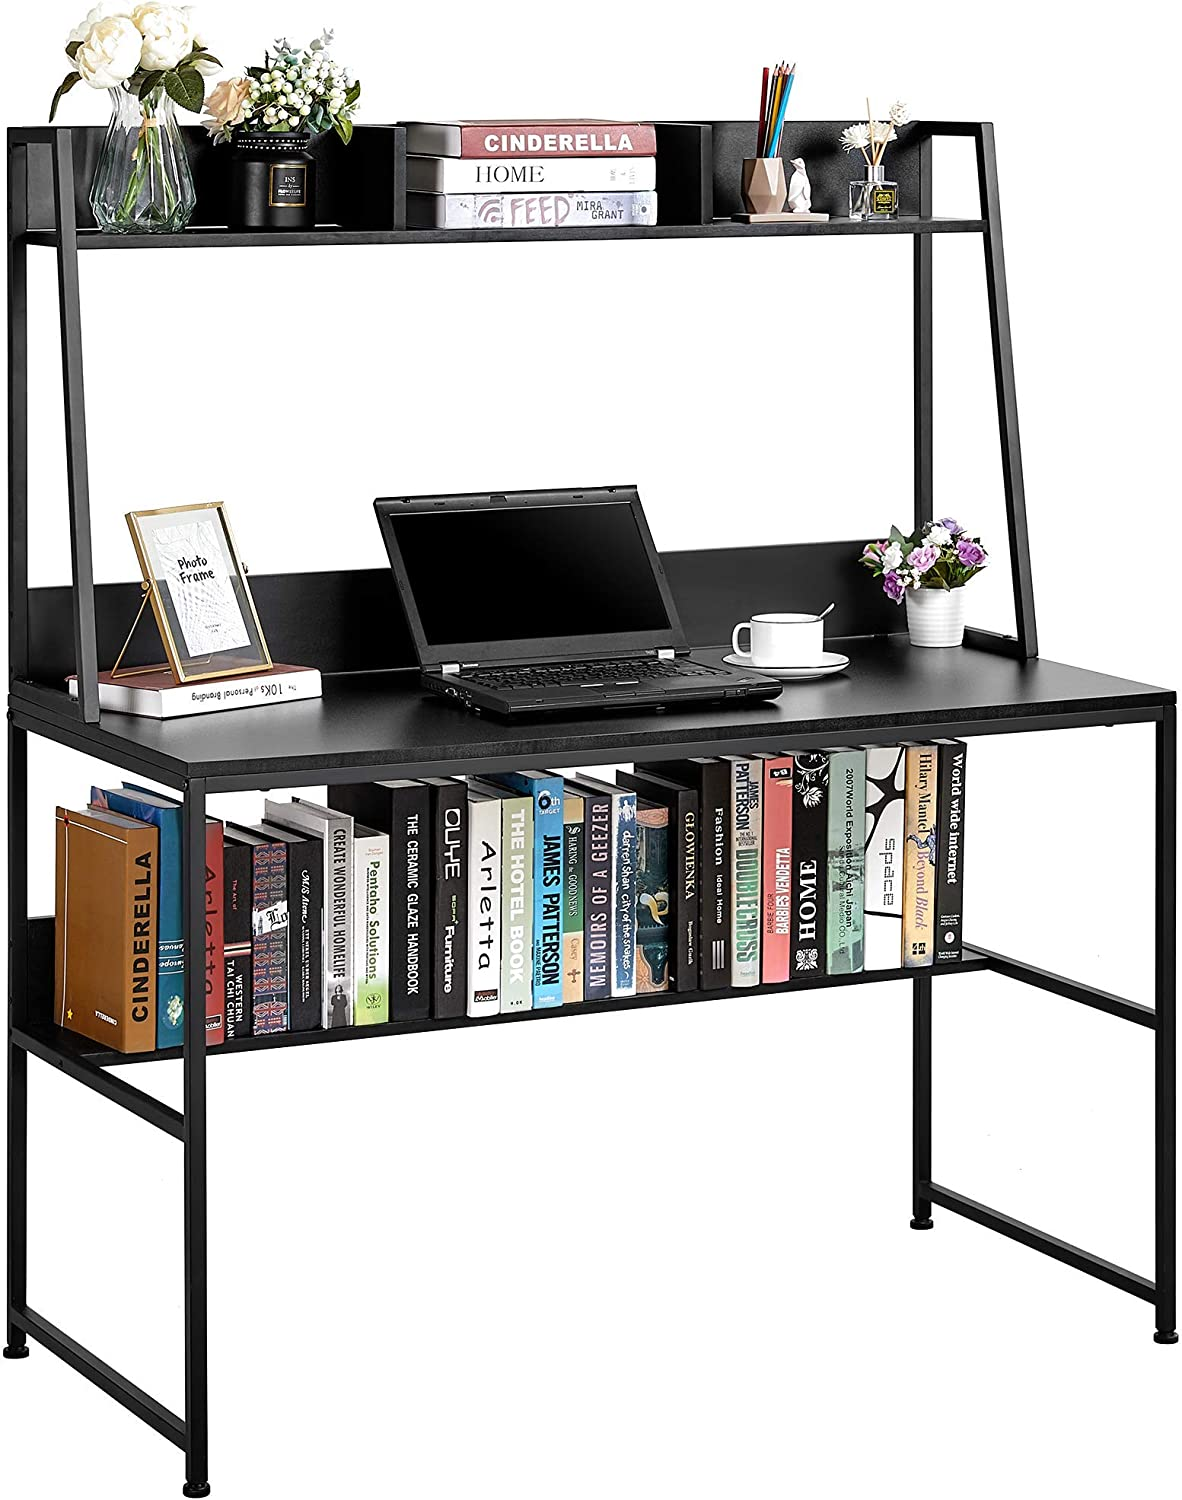 Kealive 47.2 inch Computer Desk with Hutch and Shelf, Writing Study Table with Bookshelf, Modern Home Office Desk for Small Space, PC Laptop Workstation Steel Frame & Wood Desk, Black